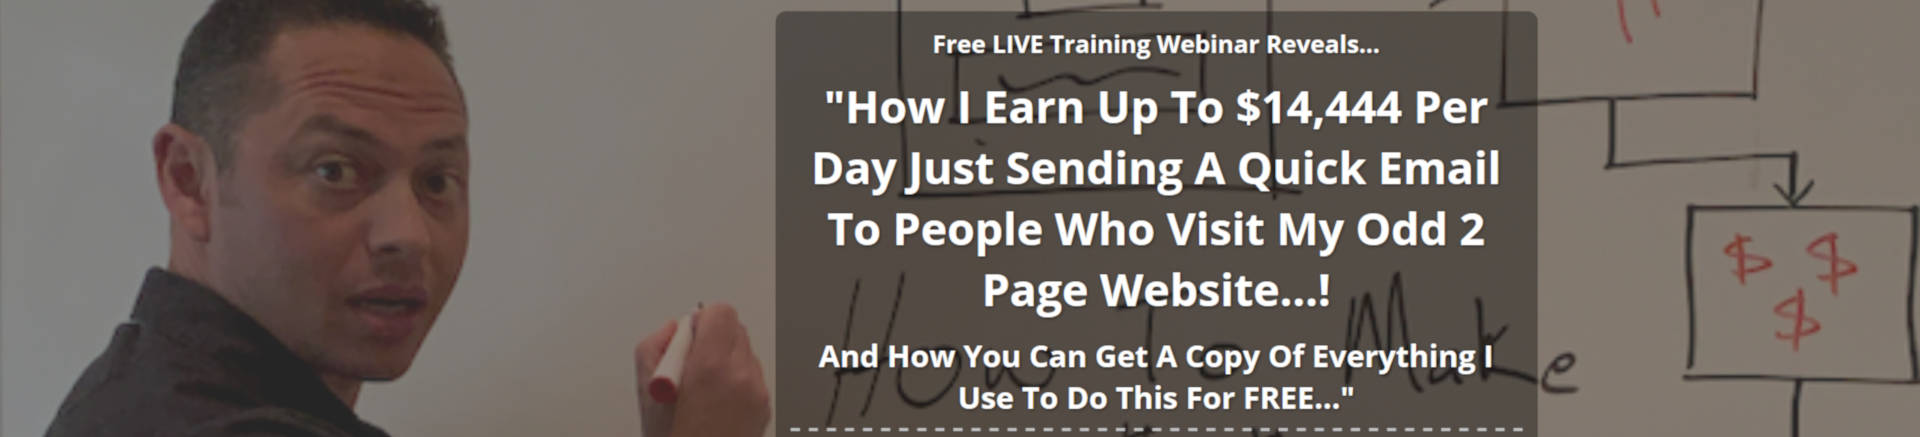 1k A Day Fast Track Training Program Warranty Information